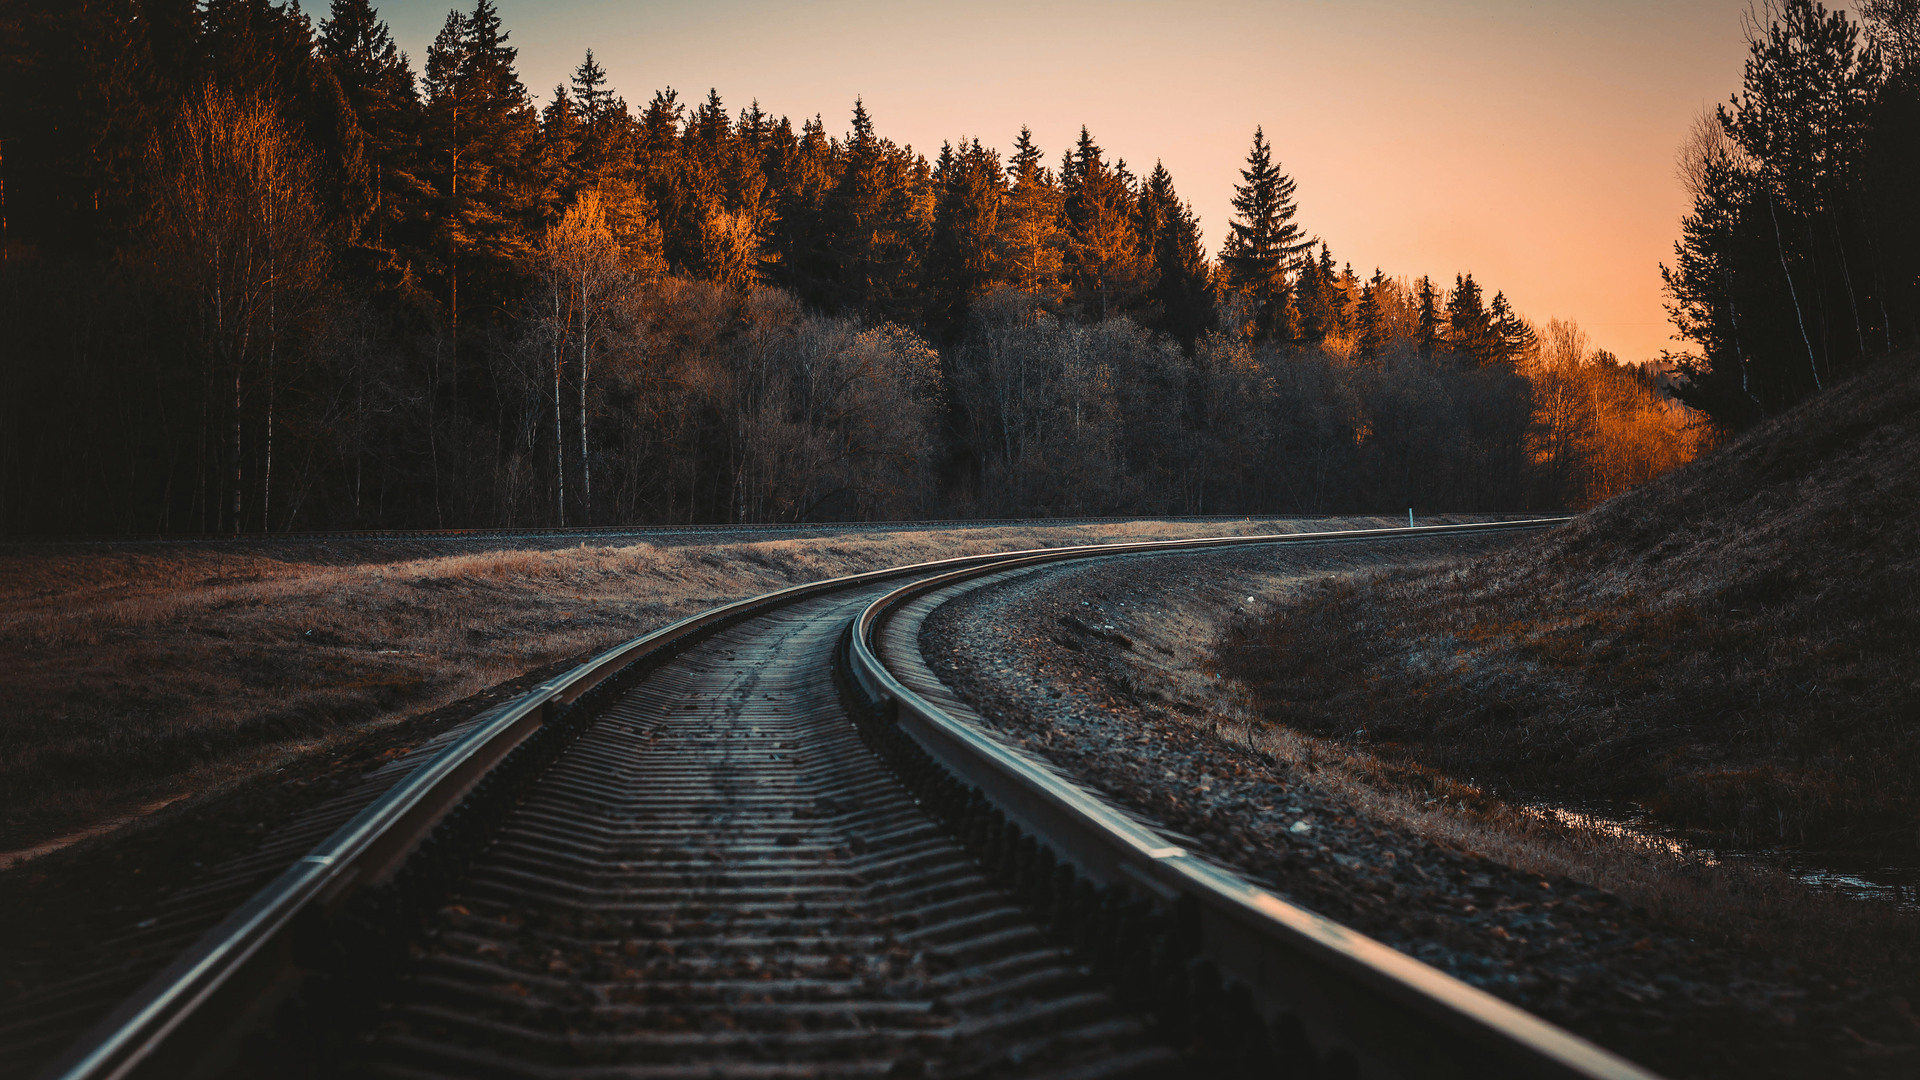 1920x1080 train rail 5k laptop full hd 1080p hd 4k wallpapers images backgrounds photos and - Track wallpaper hd ...